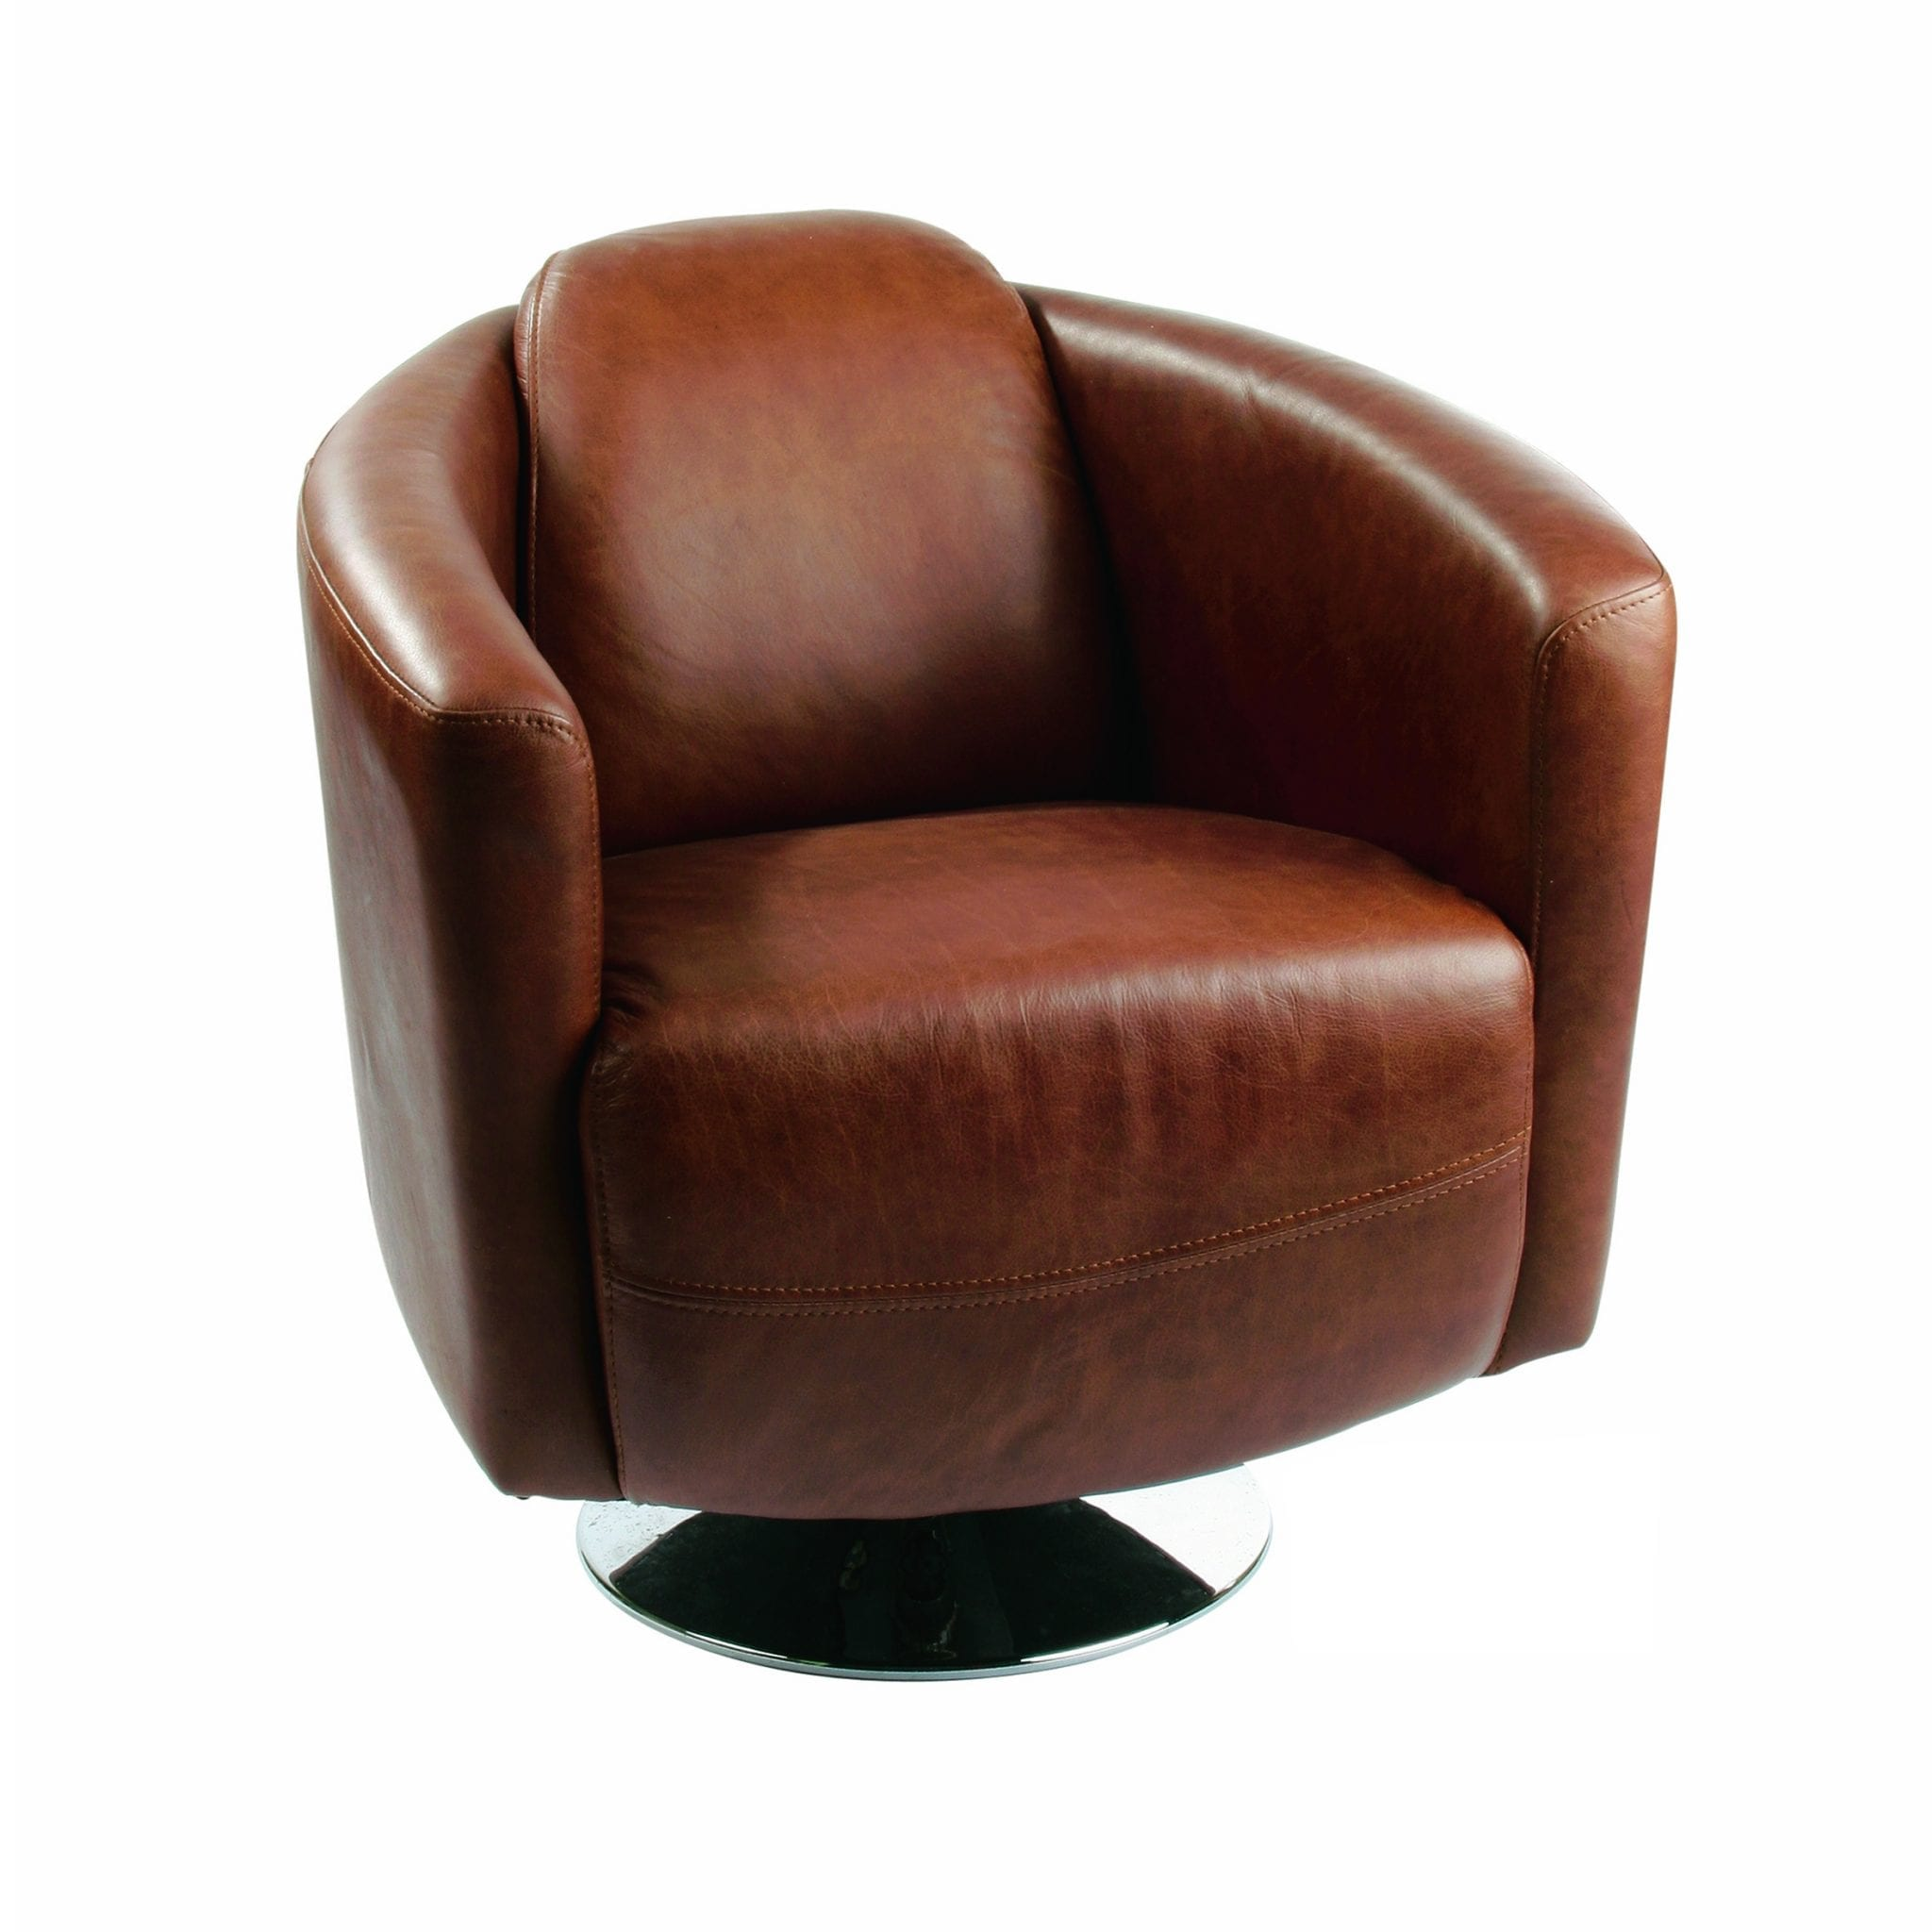 swivel recliner chairs nz electric chair power supply halo rocket armchair mckenzie and willis